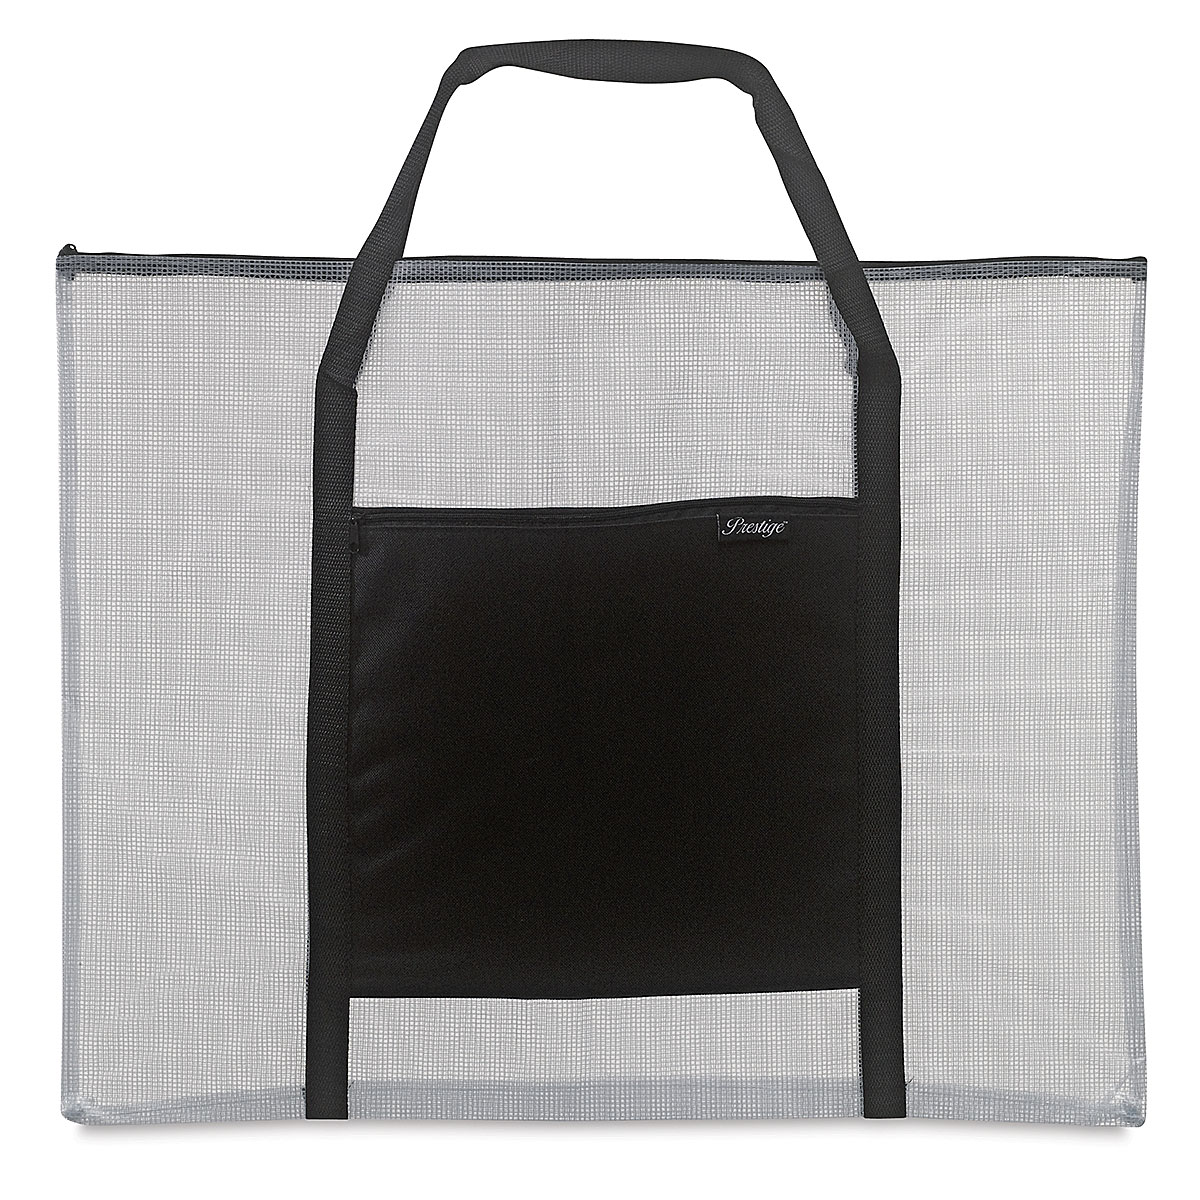 Ideal for artwork A2 Carry Case with Handle presentations and more. projects